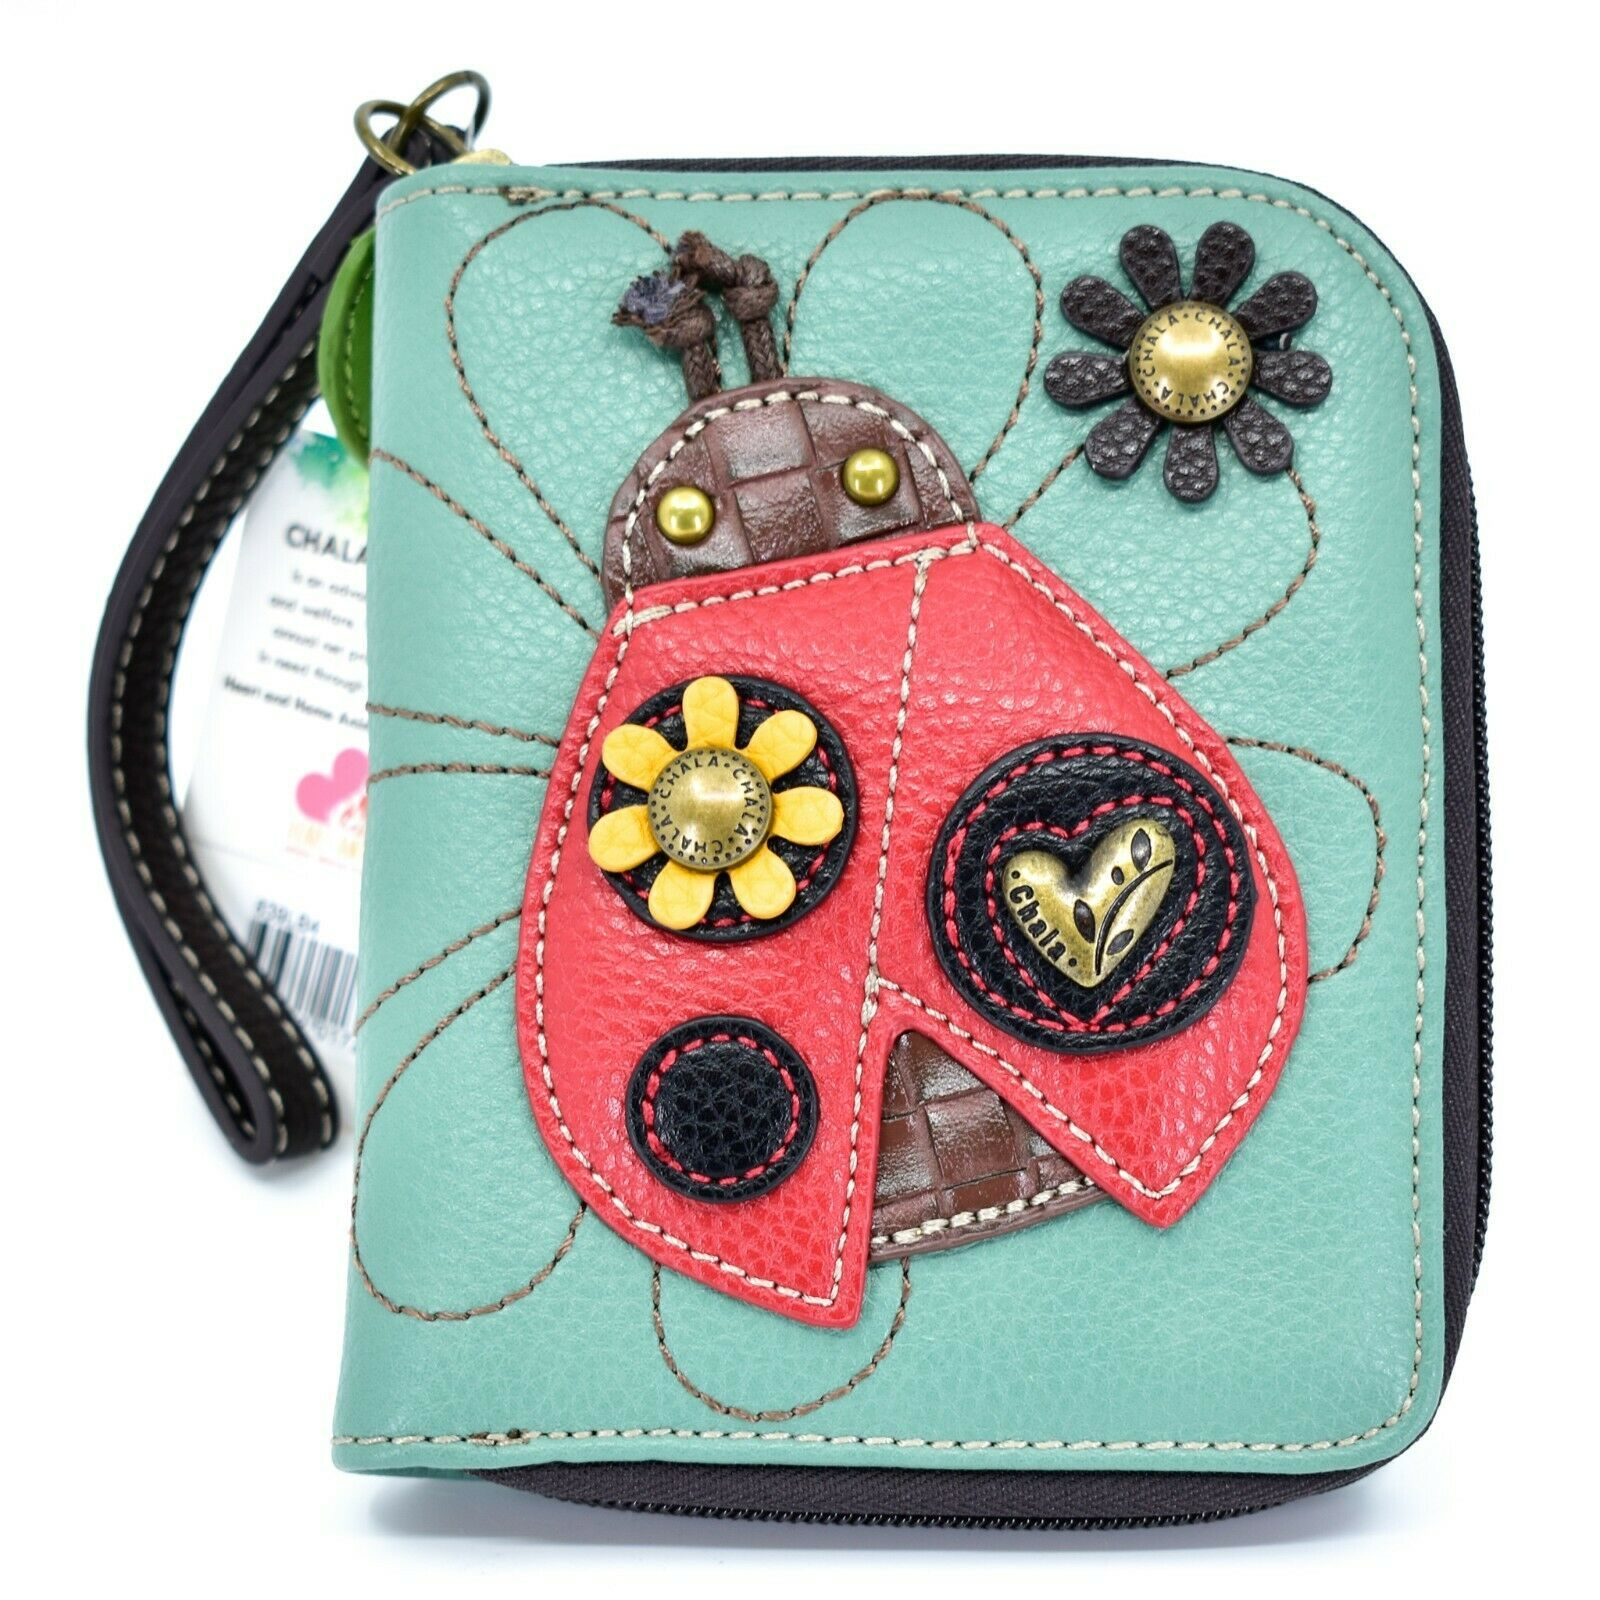 Chala Handbags Faux Leather Whimsical Ladybug Teal Zip Around Wristlet Wallet